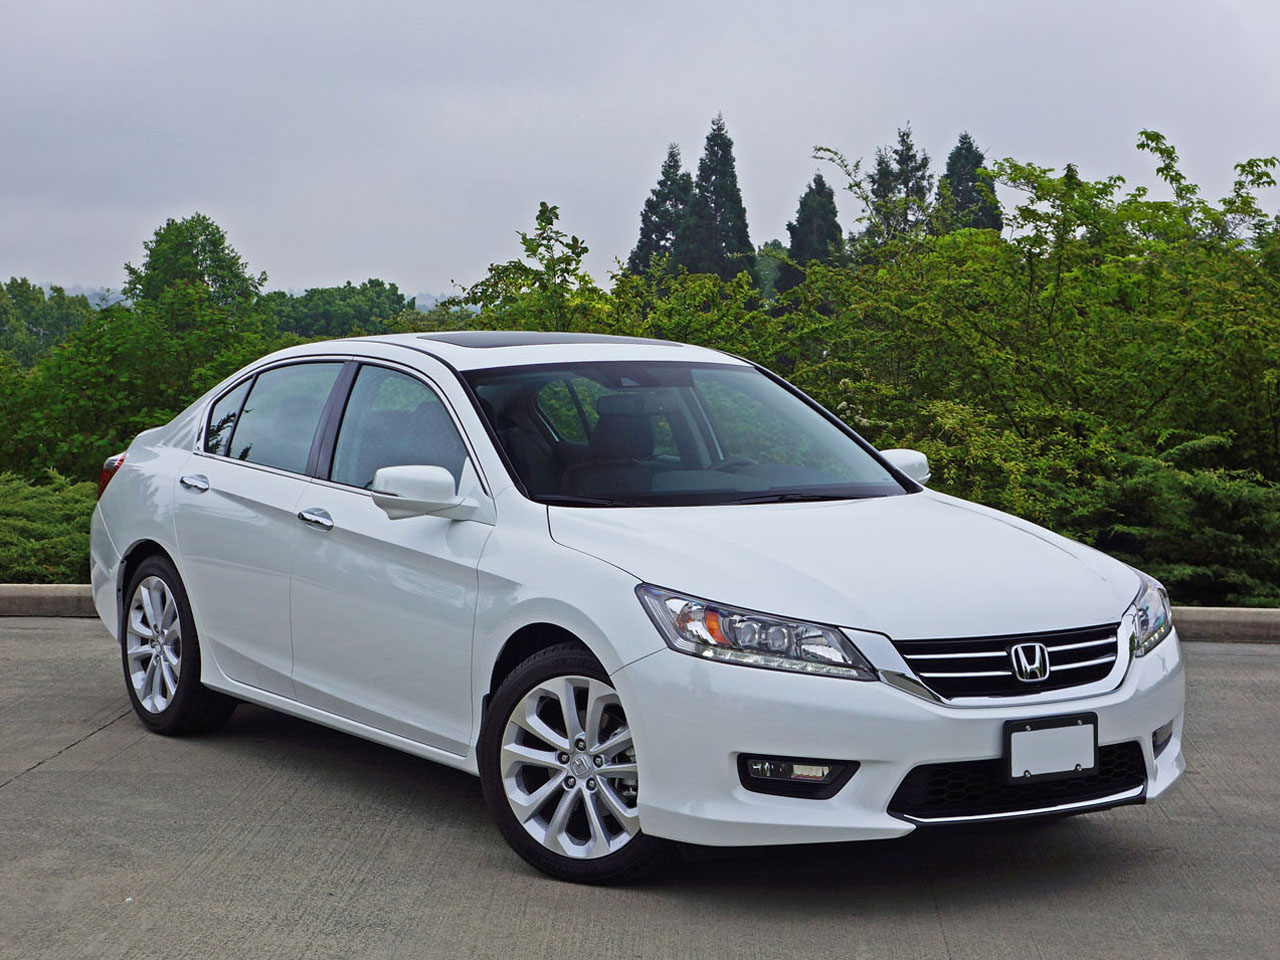 Honda Accord (Wide Body) Review